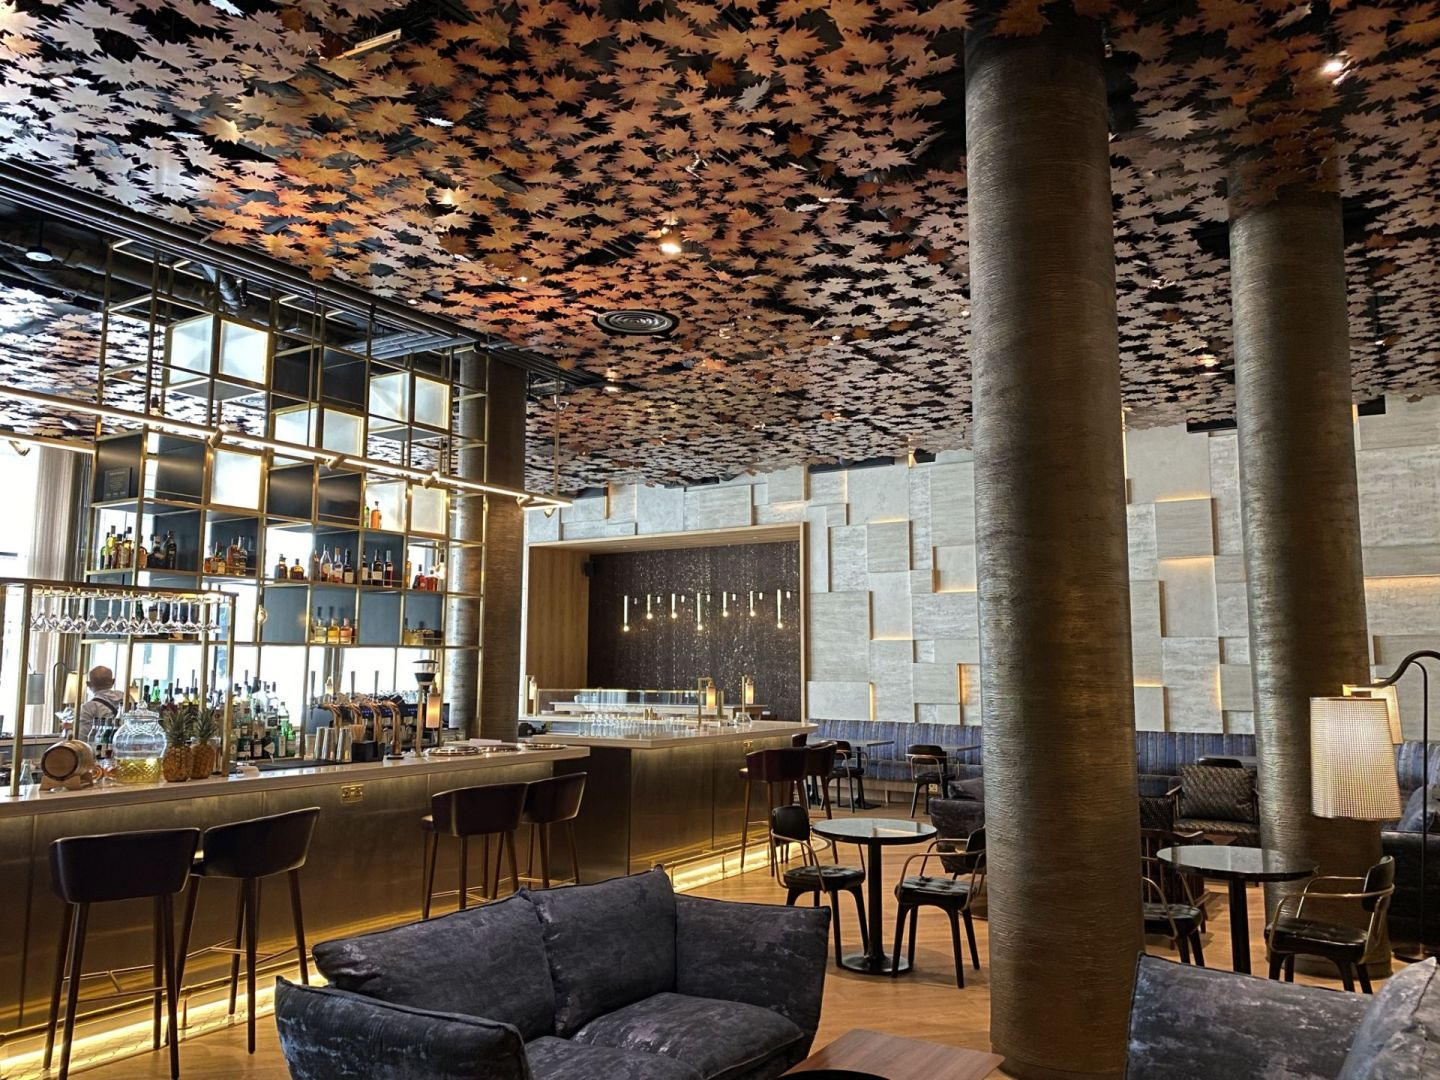 The bar at the Middle Eight hotel, with its sycamore leaf ceiling